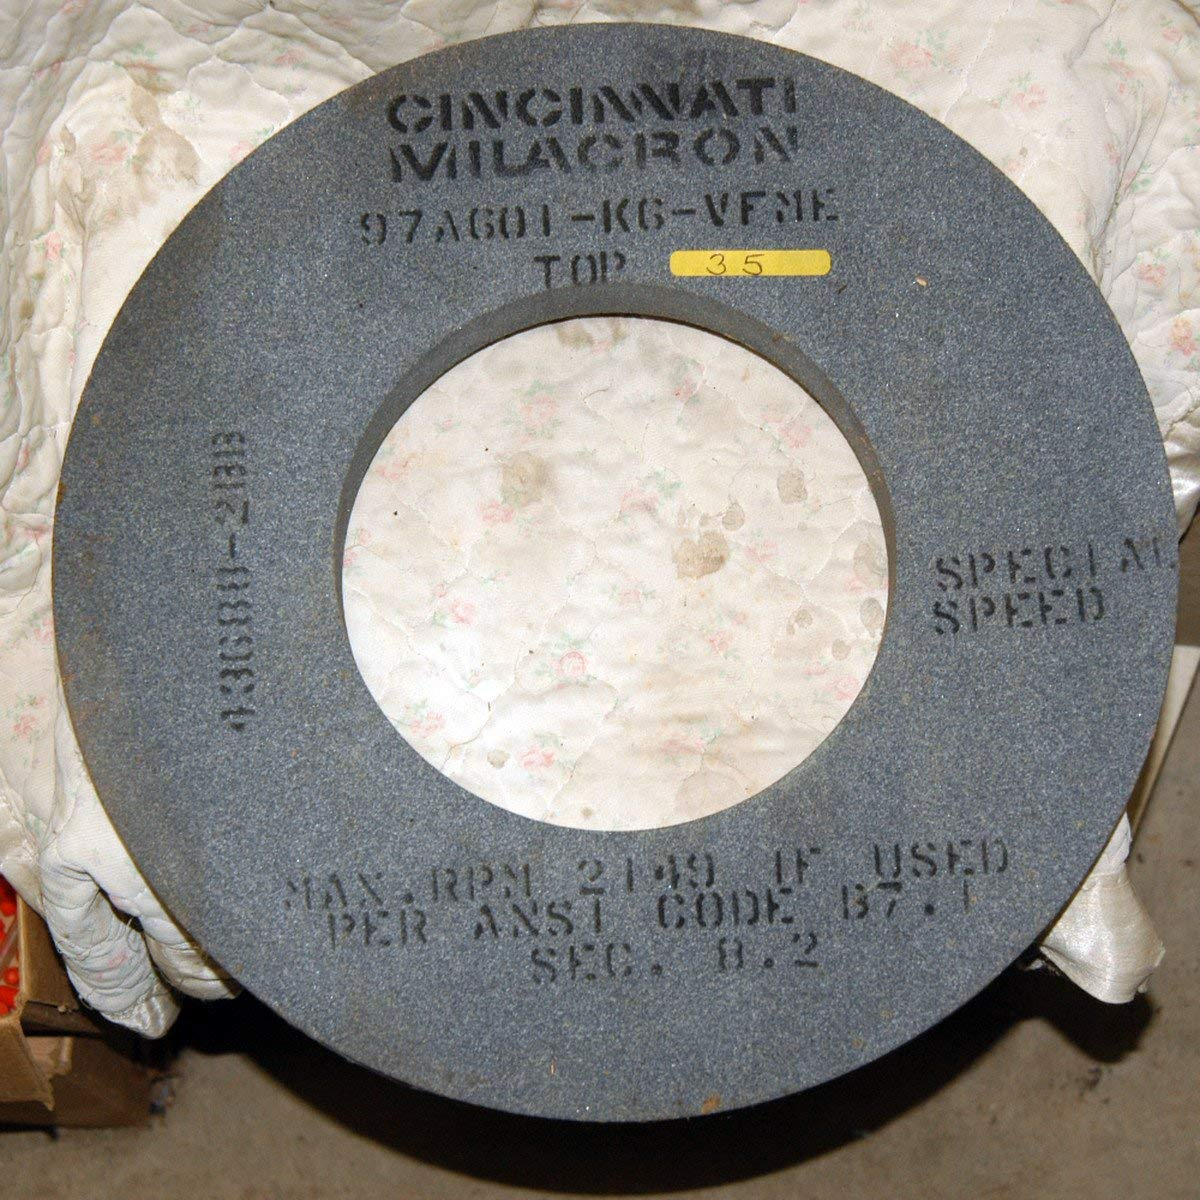 16 X 1-1/2 X 8 CYLINDRICAL GRINDING WHEEL SPEC 97A601-K6-VFME